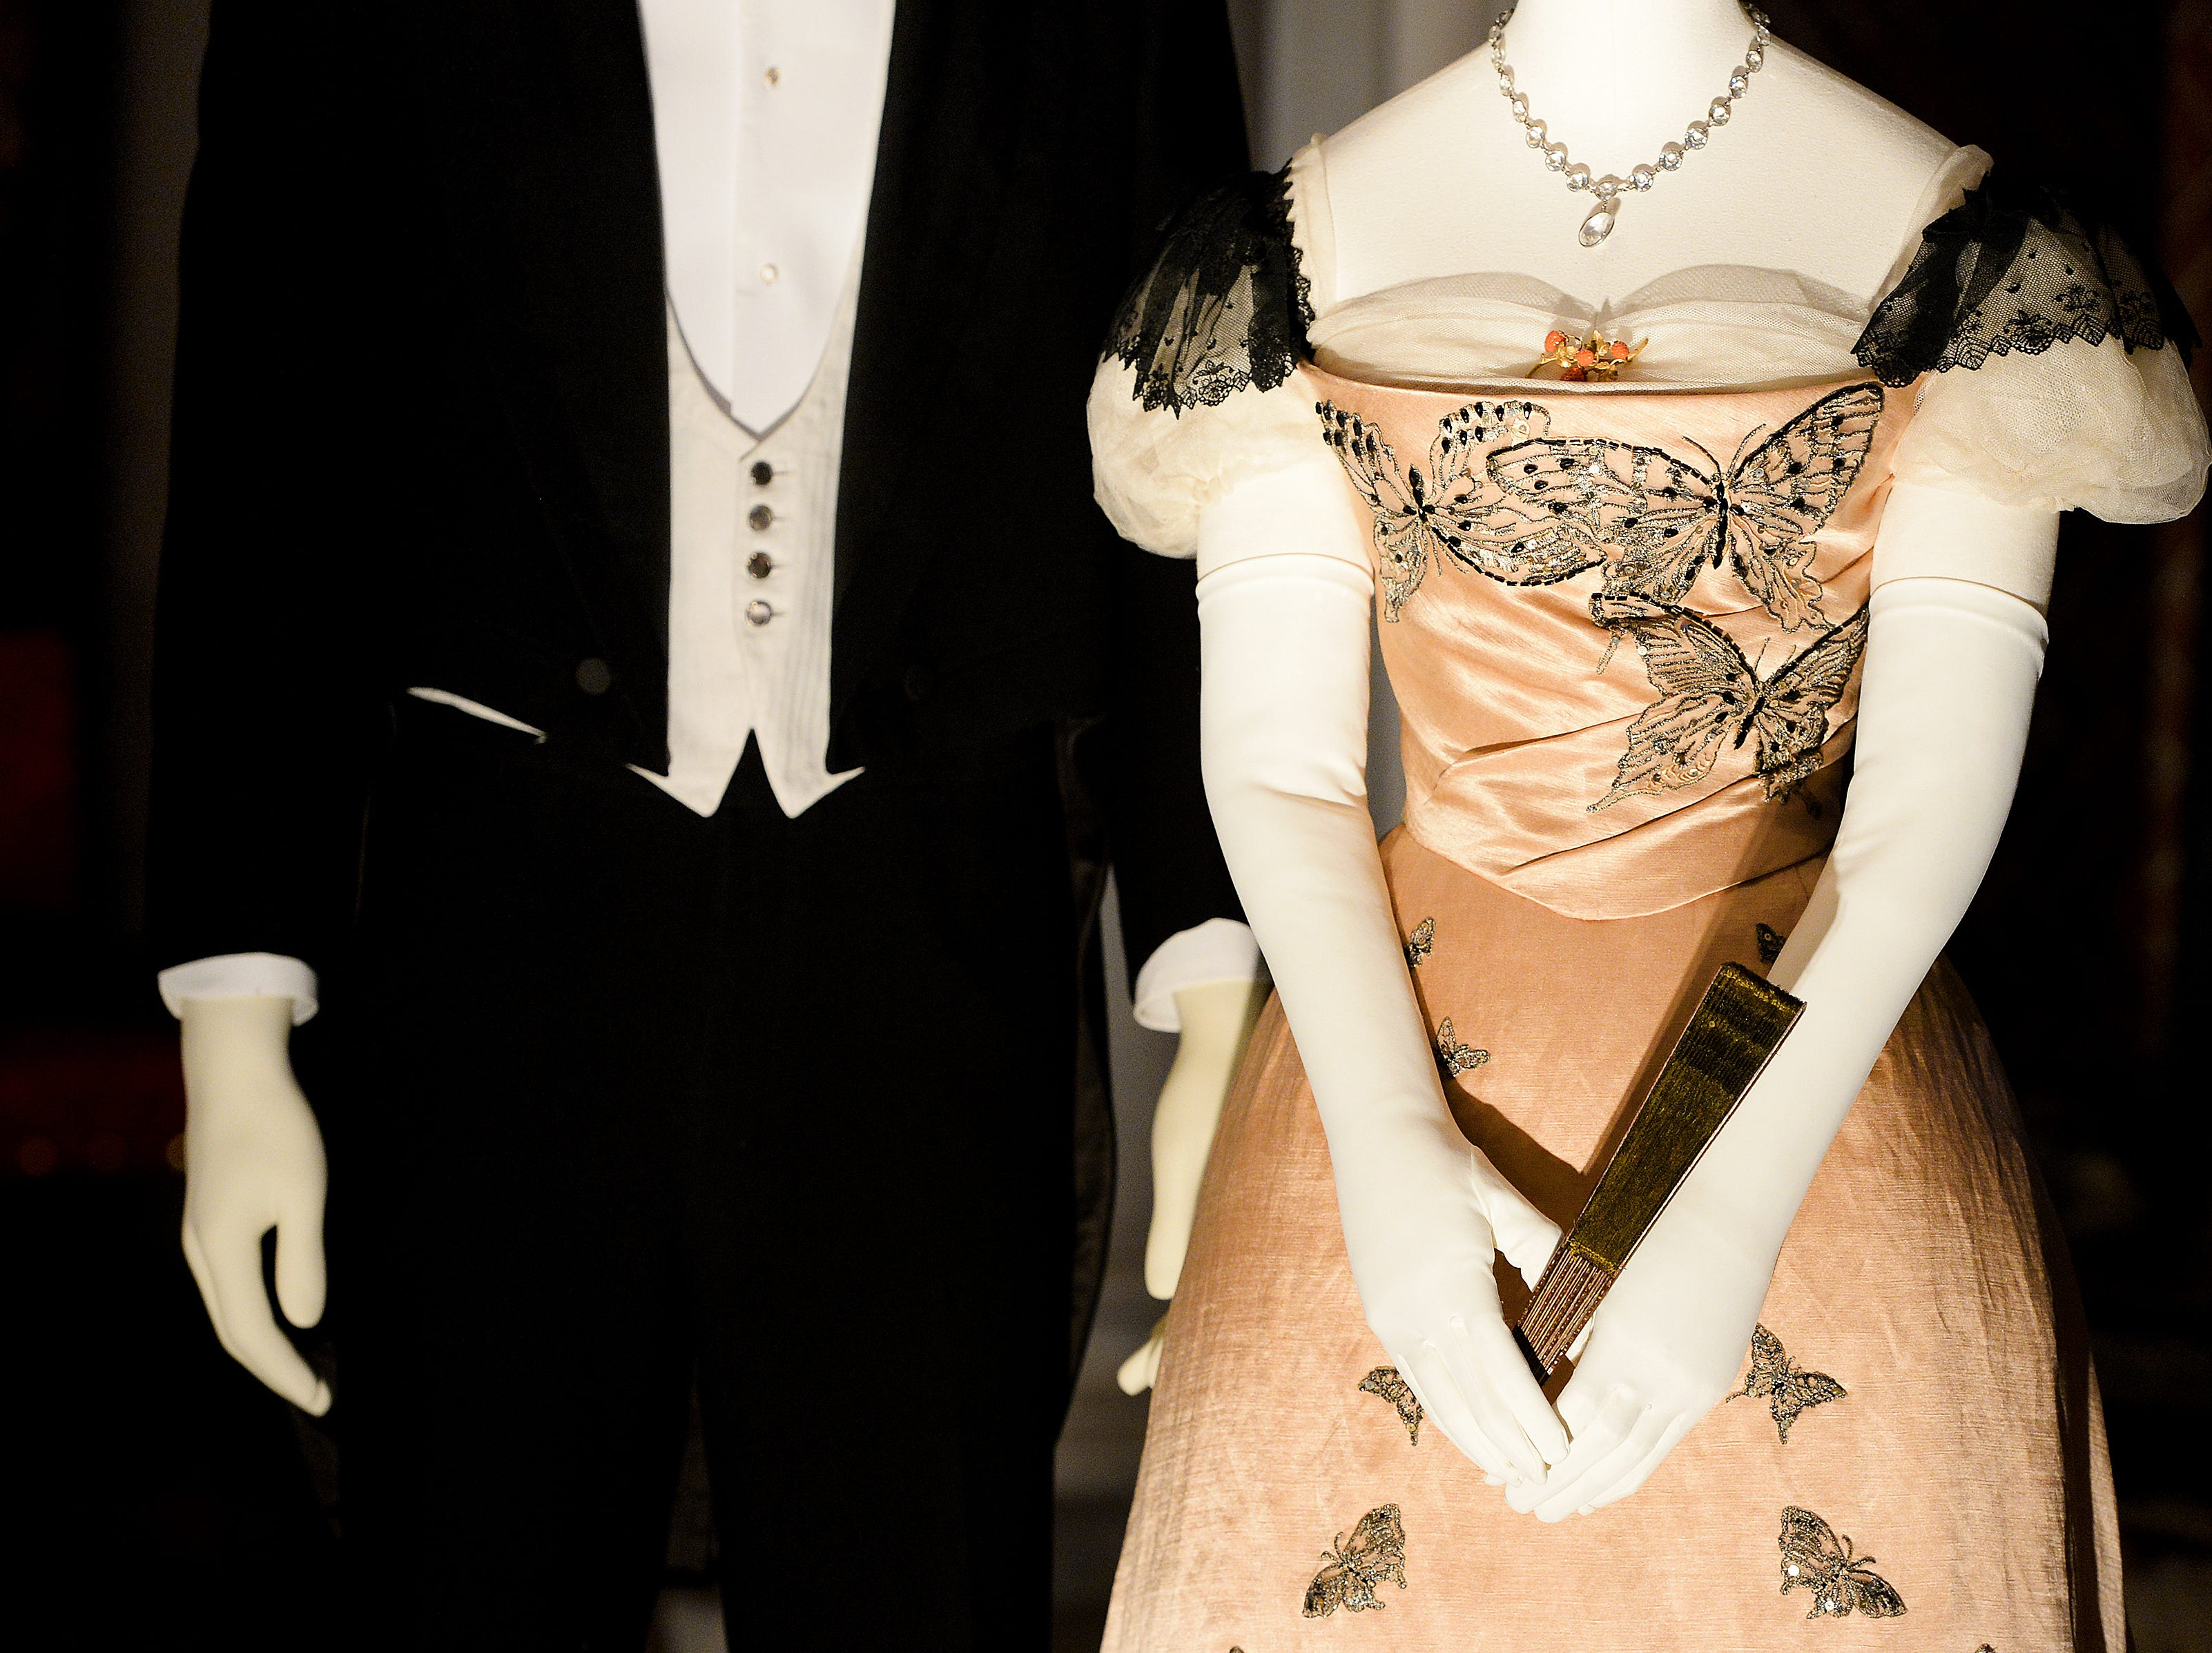 """Clothing based on photographs of Hamilton McKown Twombly and his wife, Florence Vanderbilt Twombly, George Vanderbilt's sister, are on display in the banquet hall of the Biltmore House for """"A Vanderbilt House Party, the Gilded Age."""""""